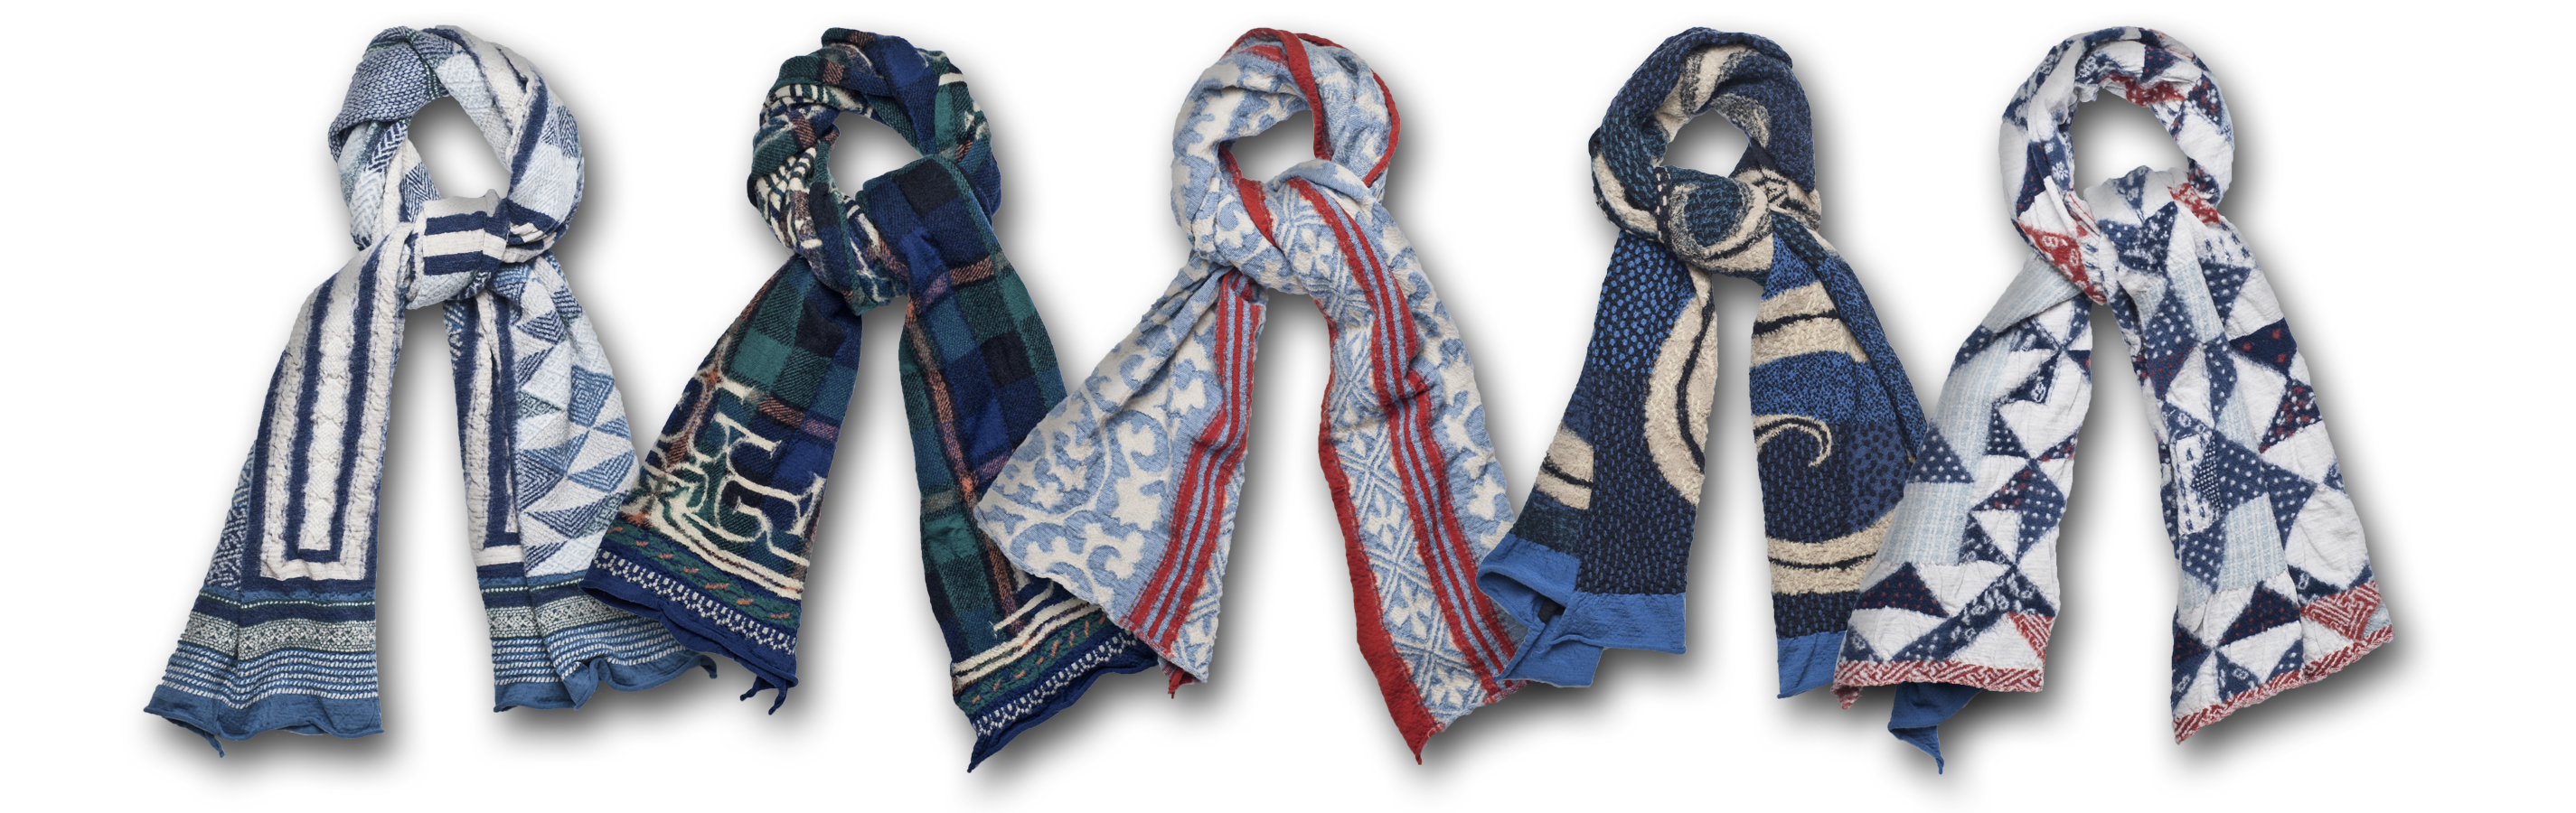 New Kapital Compressed Wool Scarves